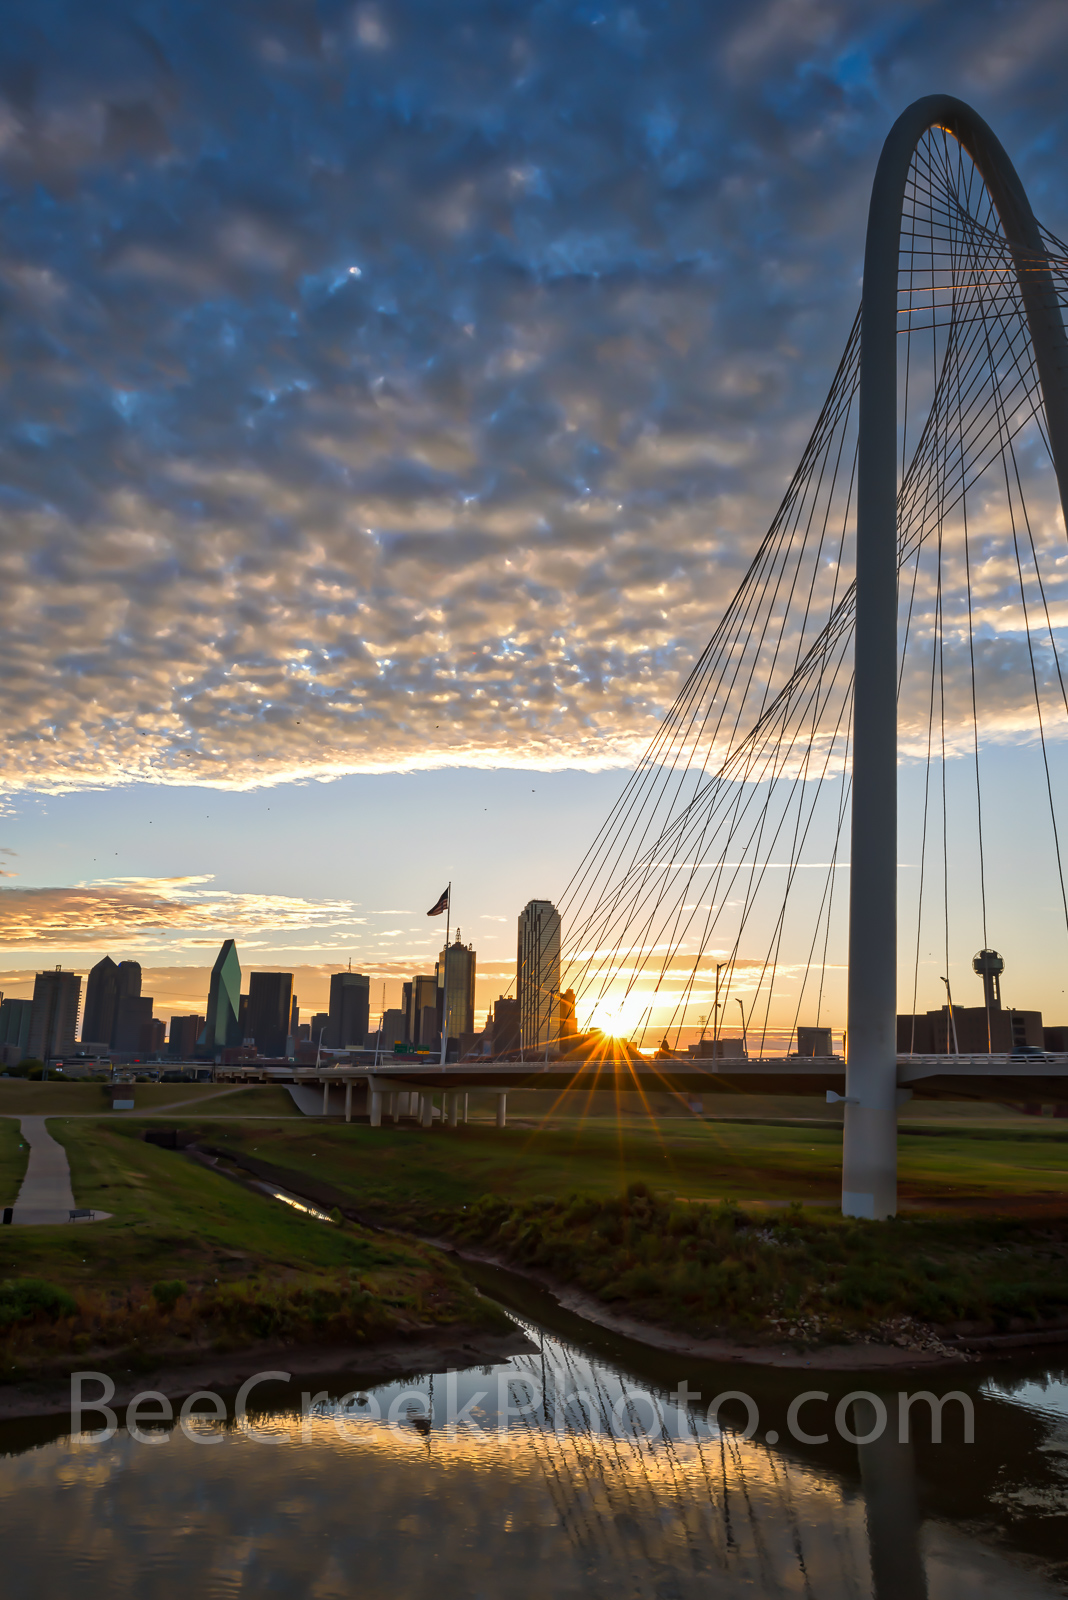 Dallas, Margaret Hunt Hill Bridge, downtown, sunrise, cityscape, high rise, buildings, city, Trinity river, clouds, Trinity project, Reunion Tower, Bank of America, Fountain Place, city, Dallas skylin, photo